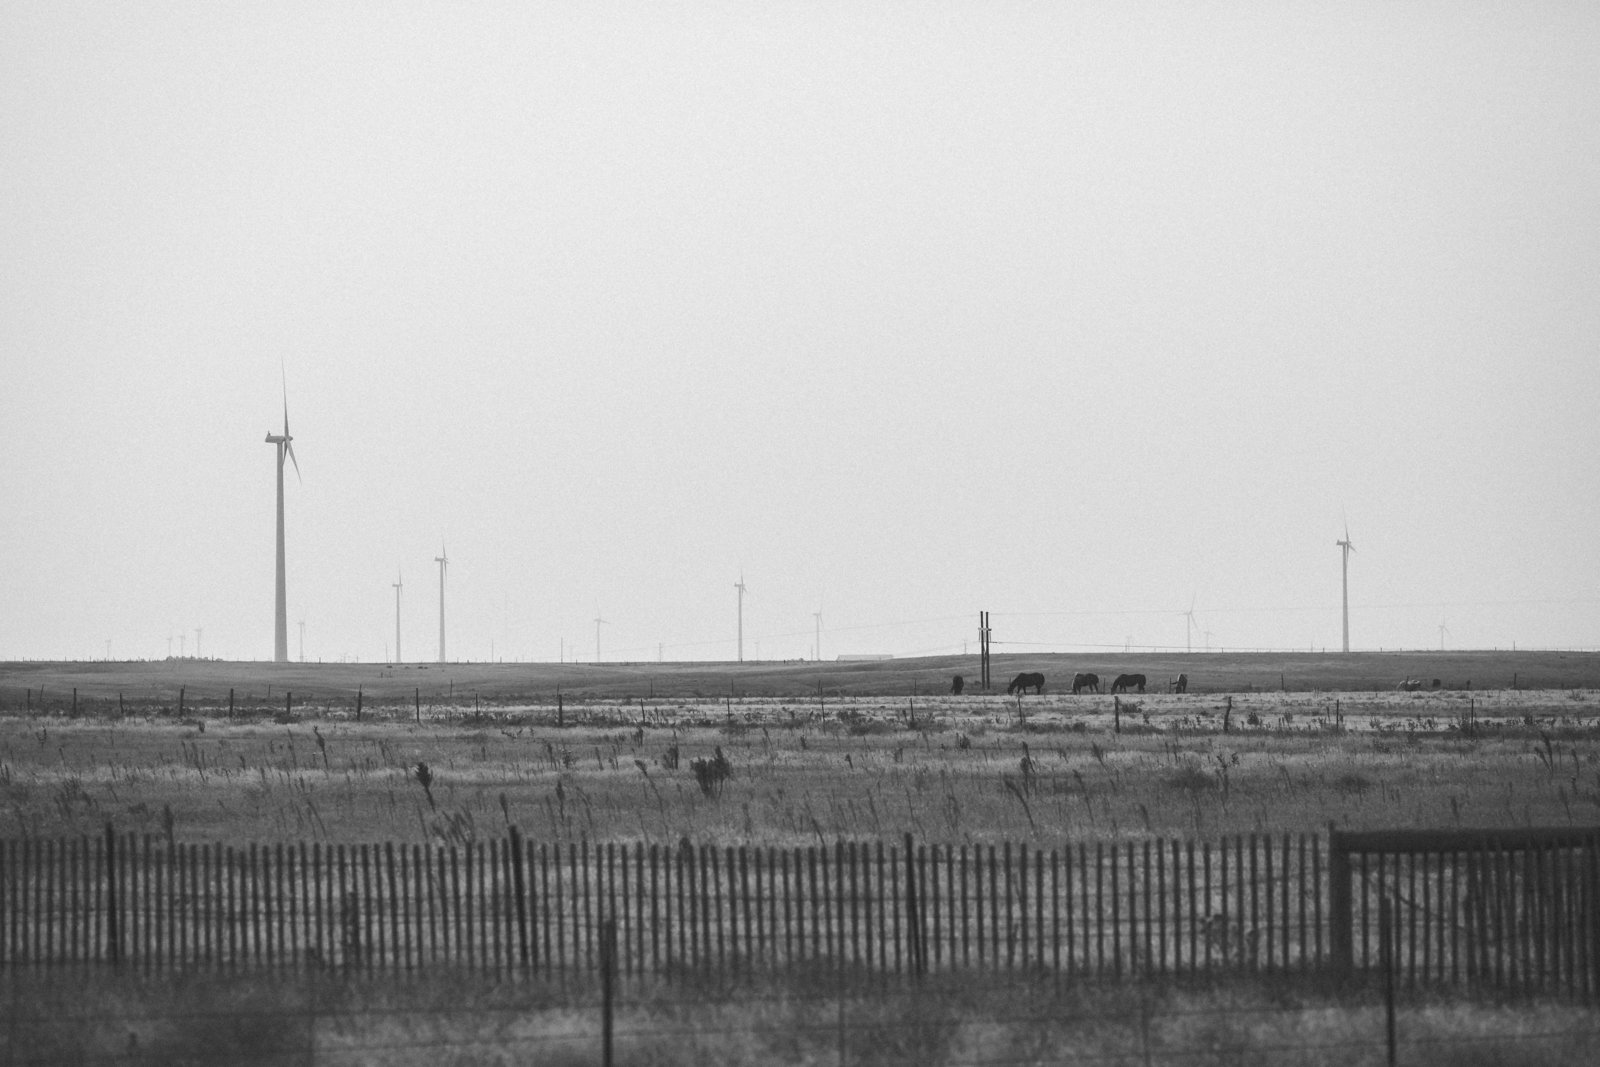 Nebraska -DiBlasio Photo-2